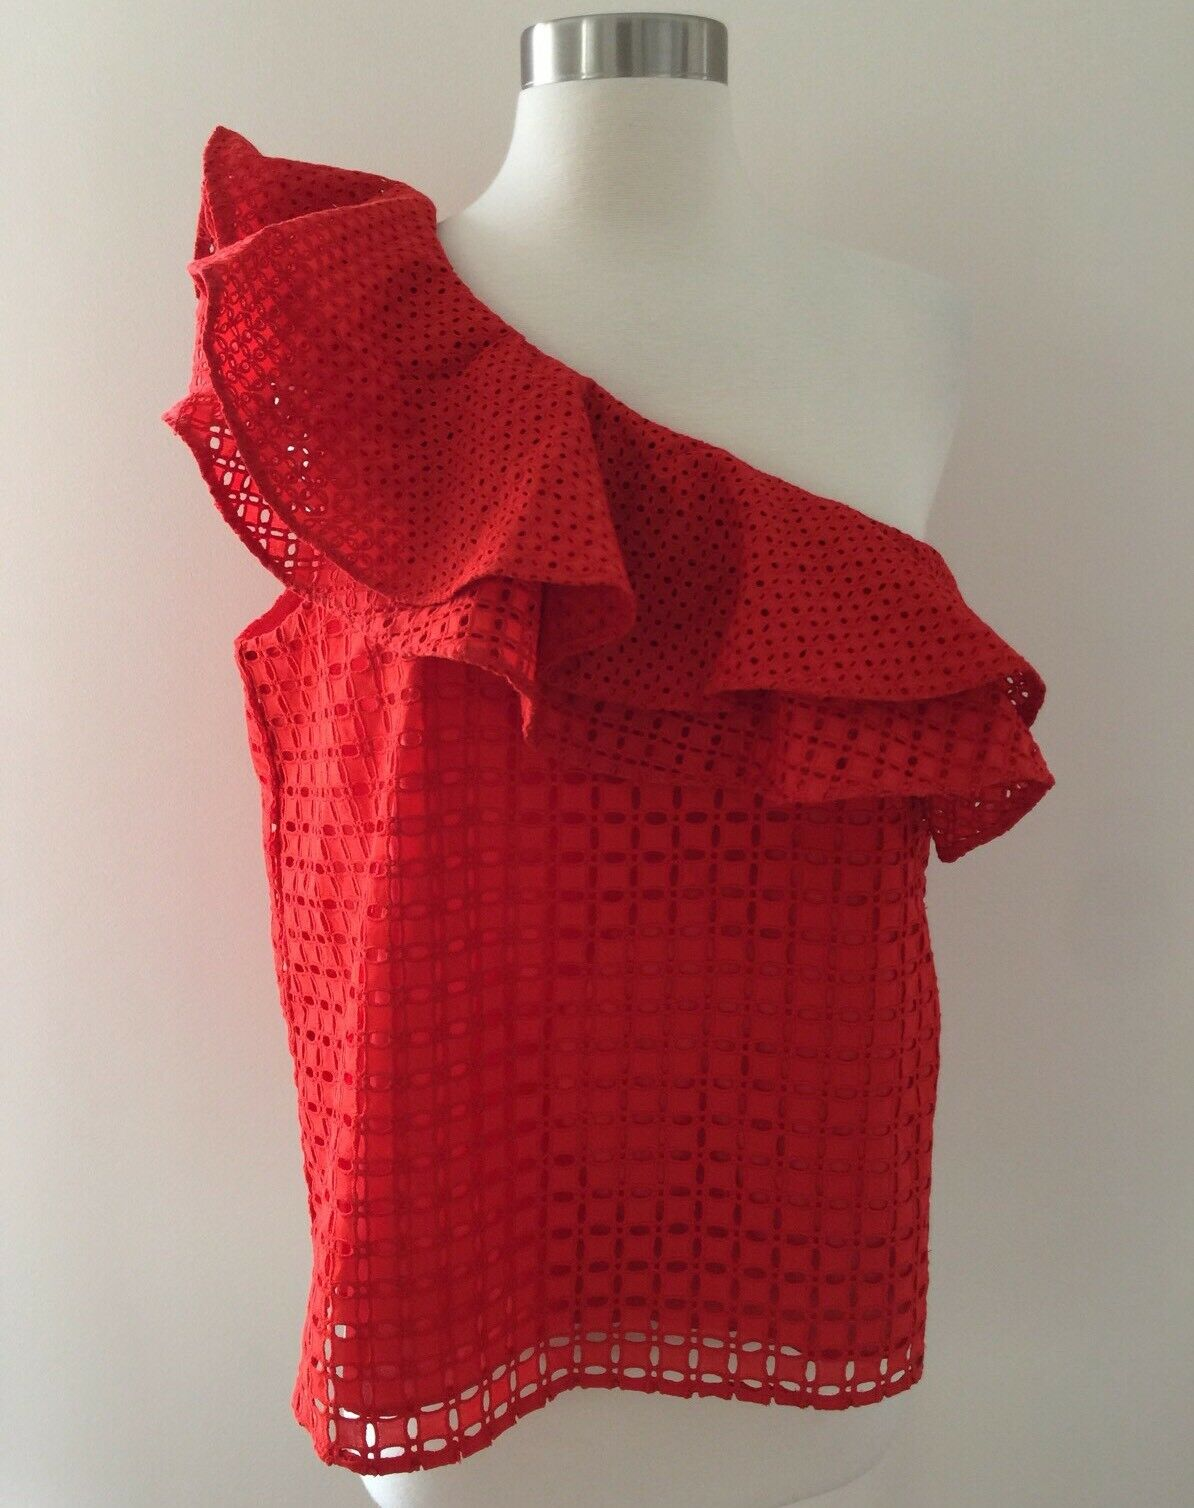 NEW J Crew One Shoulder Ruffle Top In Eyelet rot  G3395 Sz 8